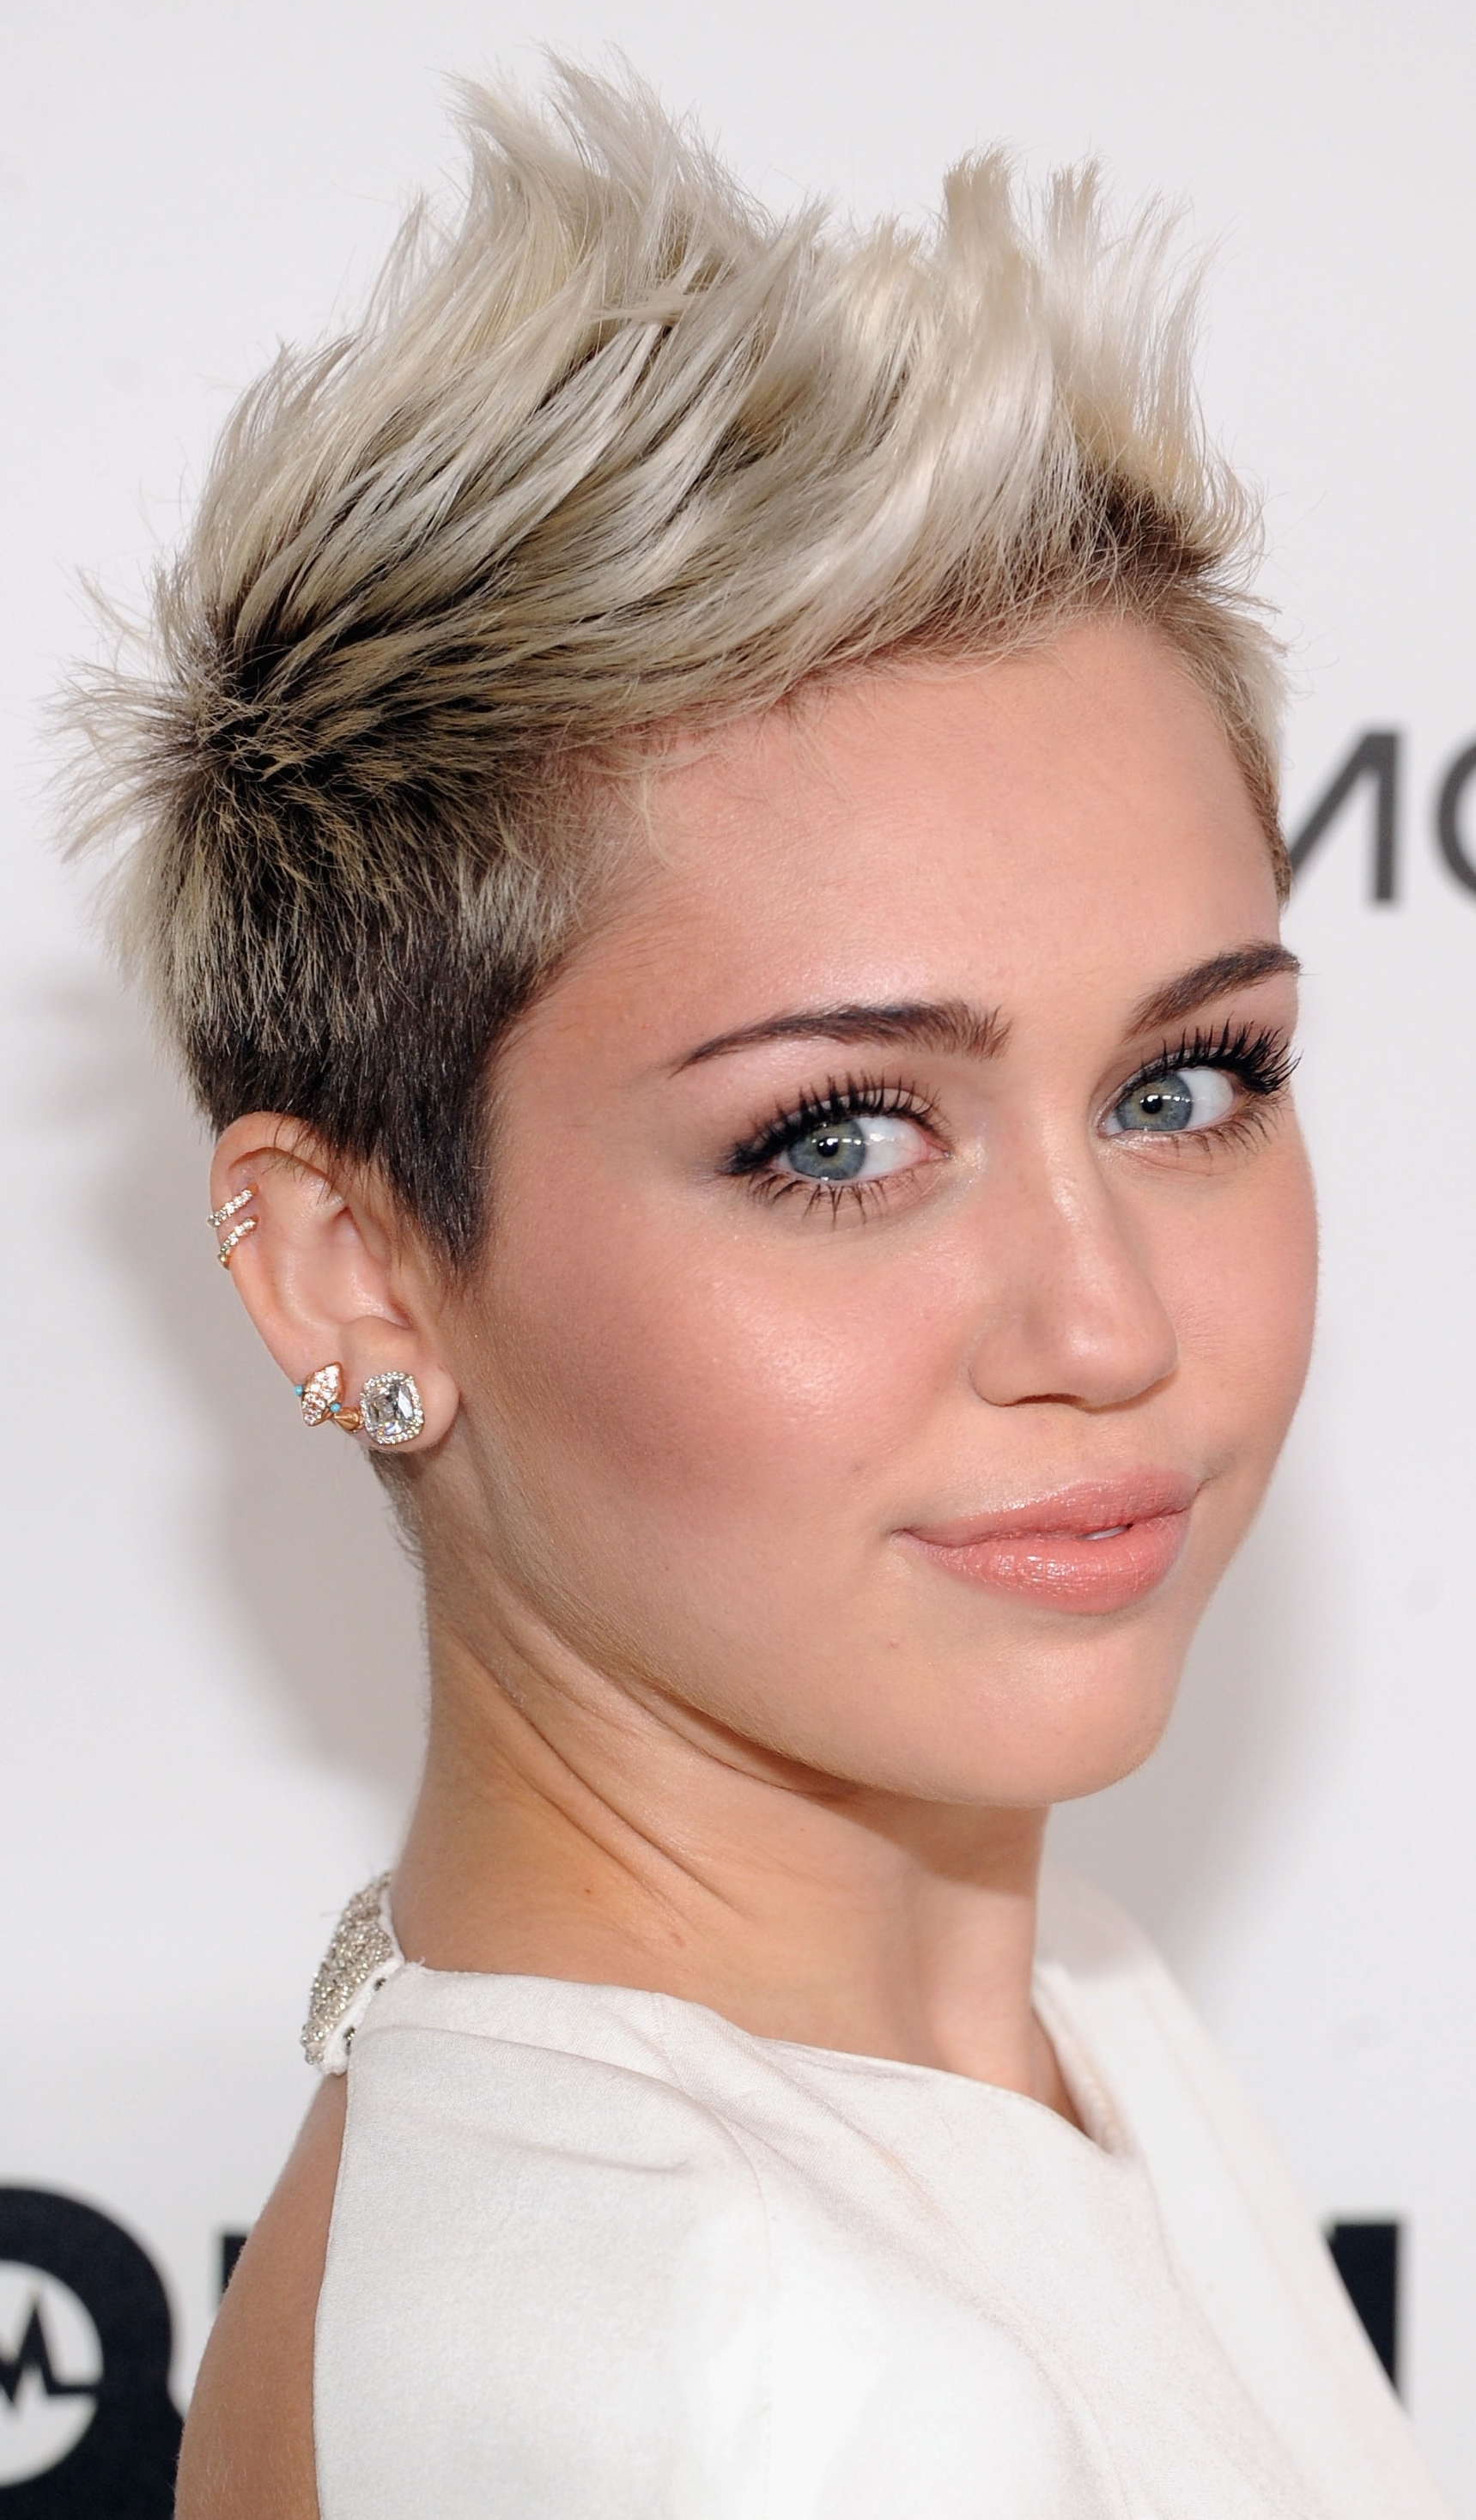 New Miley Cyrus Short Blonde Hairstyle Trends — Car And Fashions Intended For Most Up To Date Miley Cyrus Pixie Hairstyles (View 8 of 15)